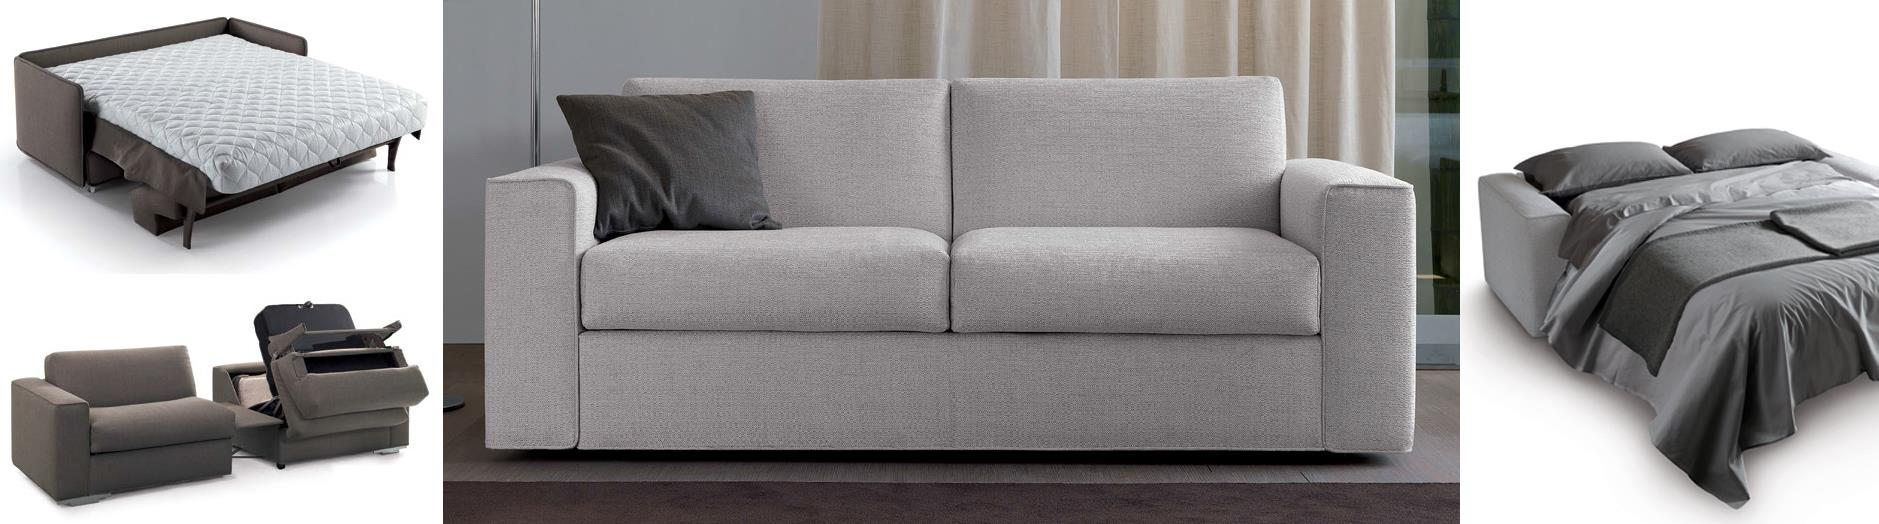 Lario-Prestige-Sofa-Bed